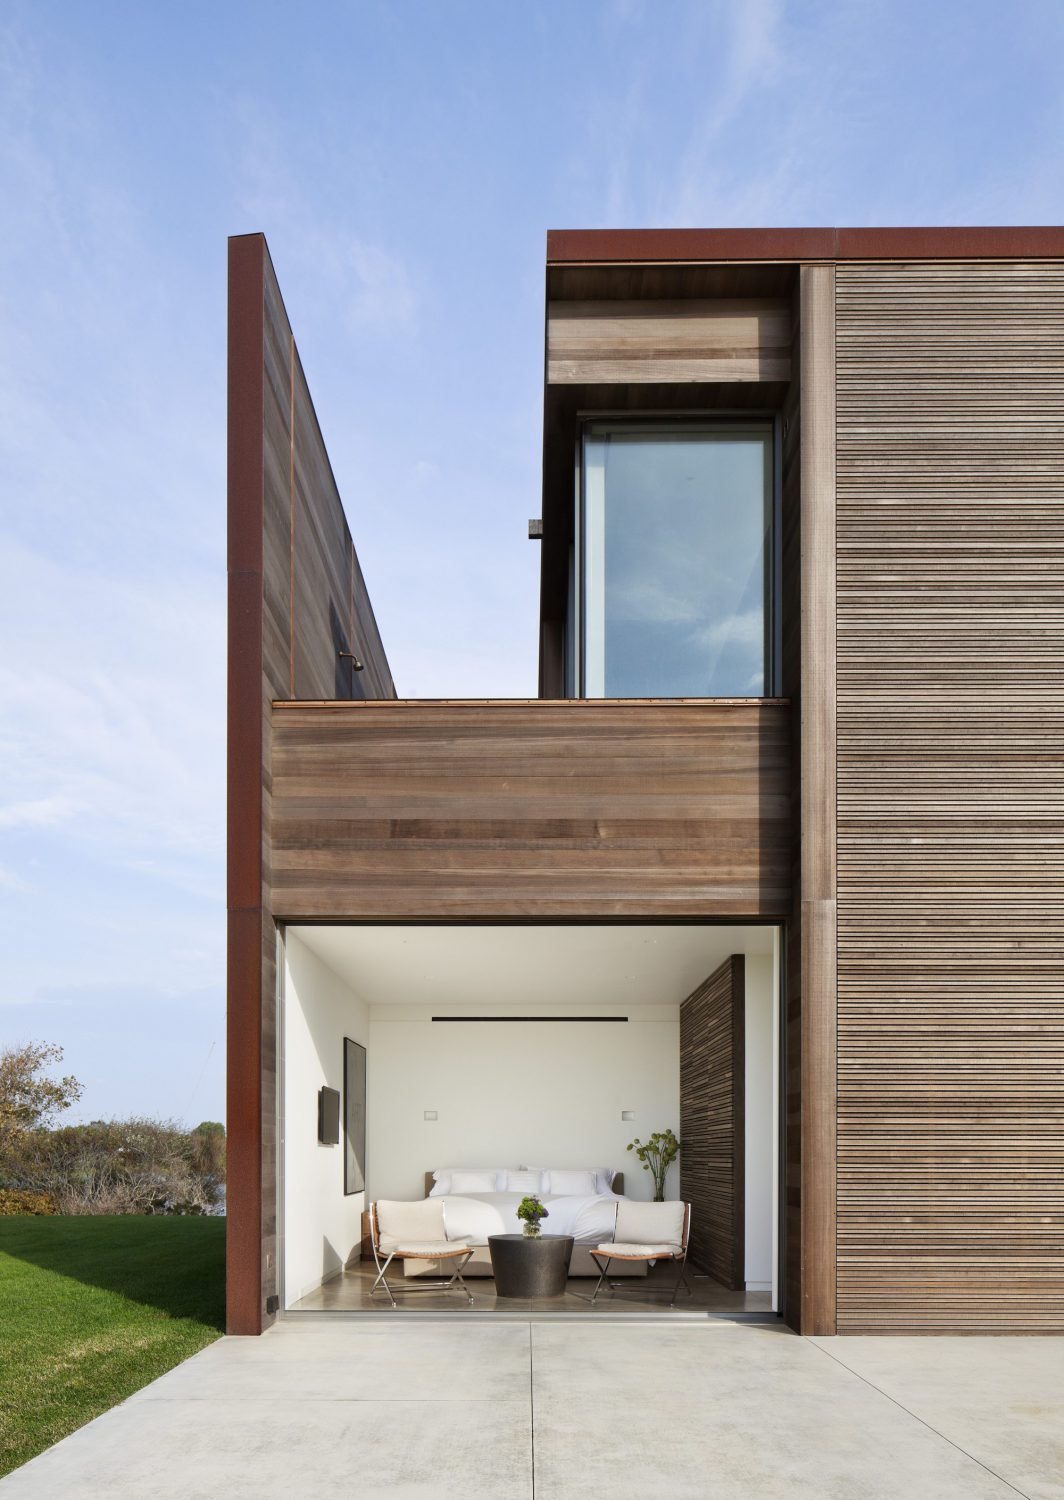 Sagaponack by Bates Masi + Architects